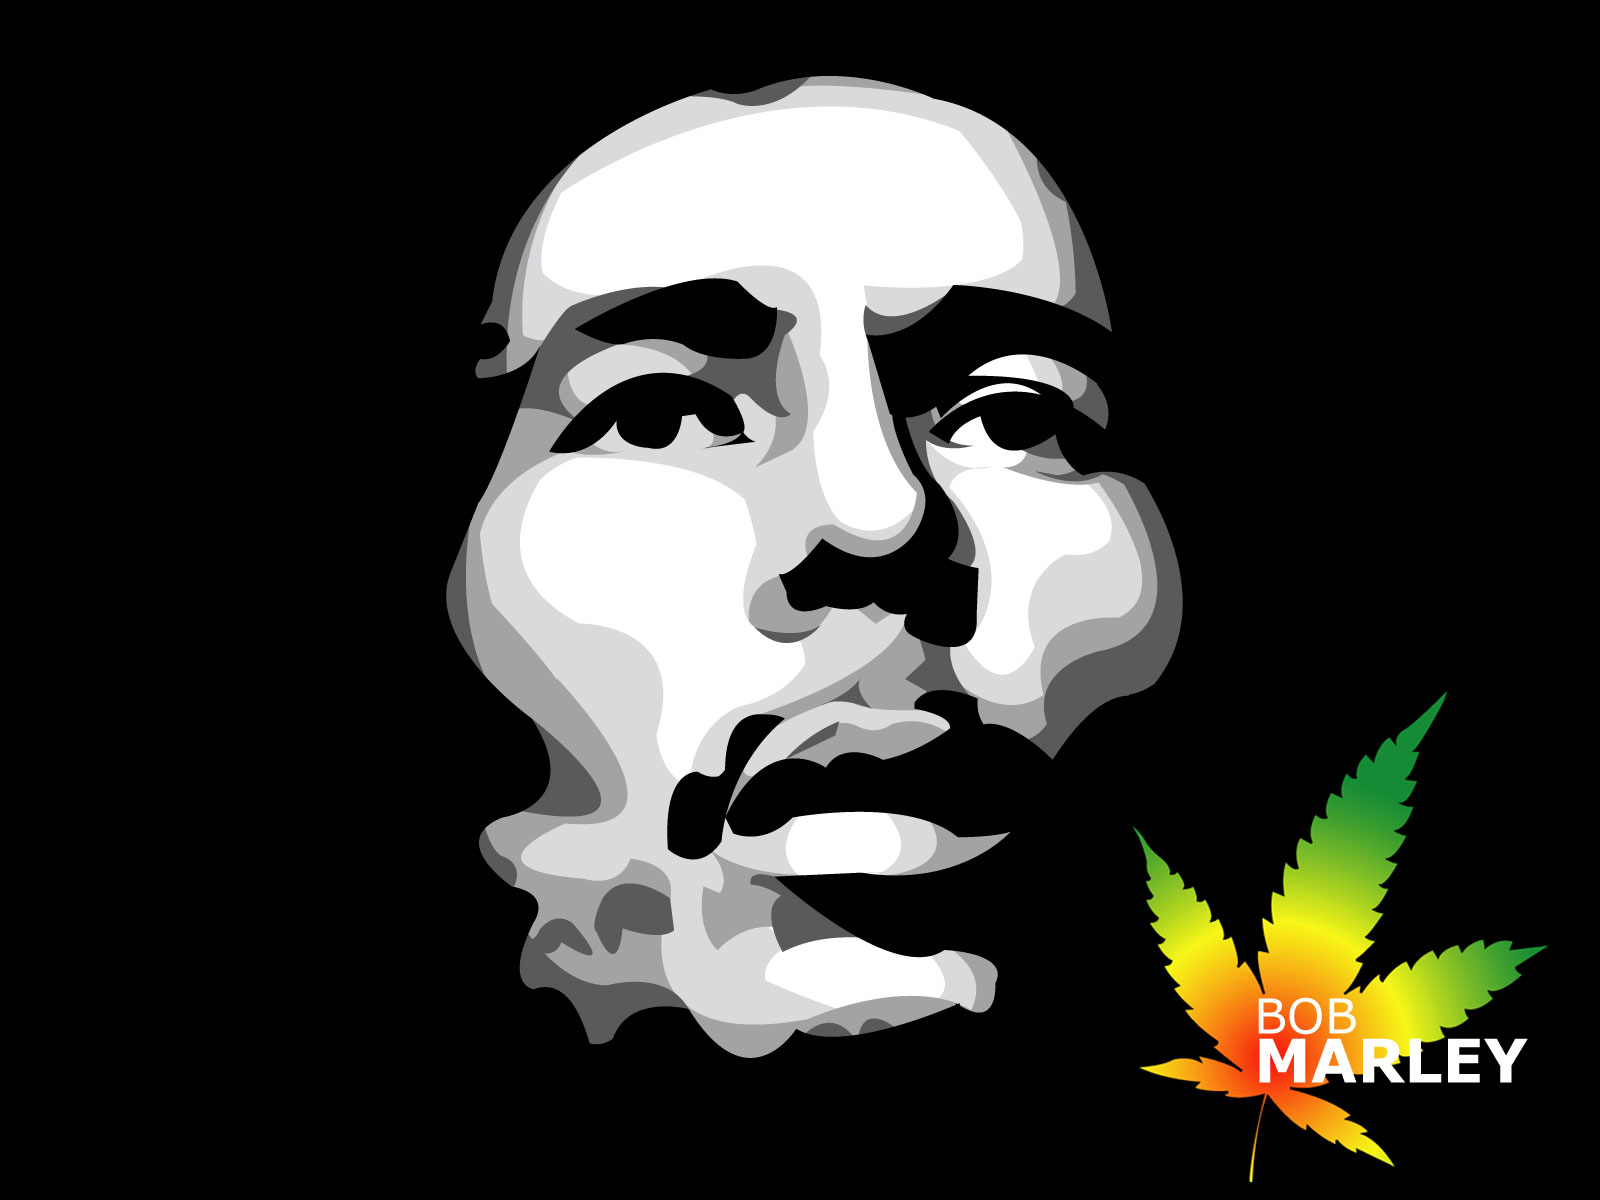 pics photos bob marley hd wallpaper for desktop